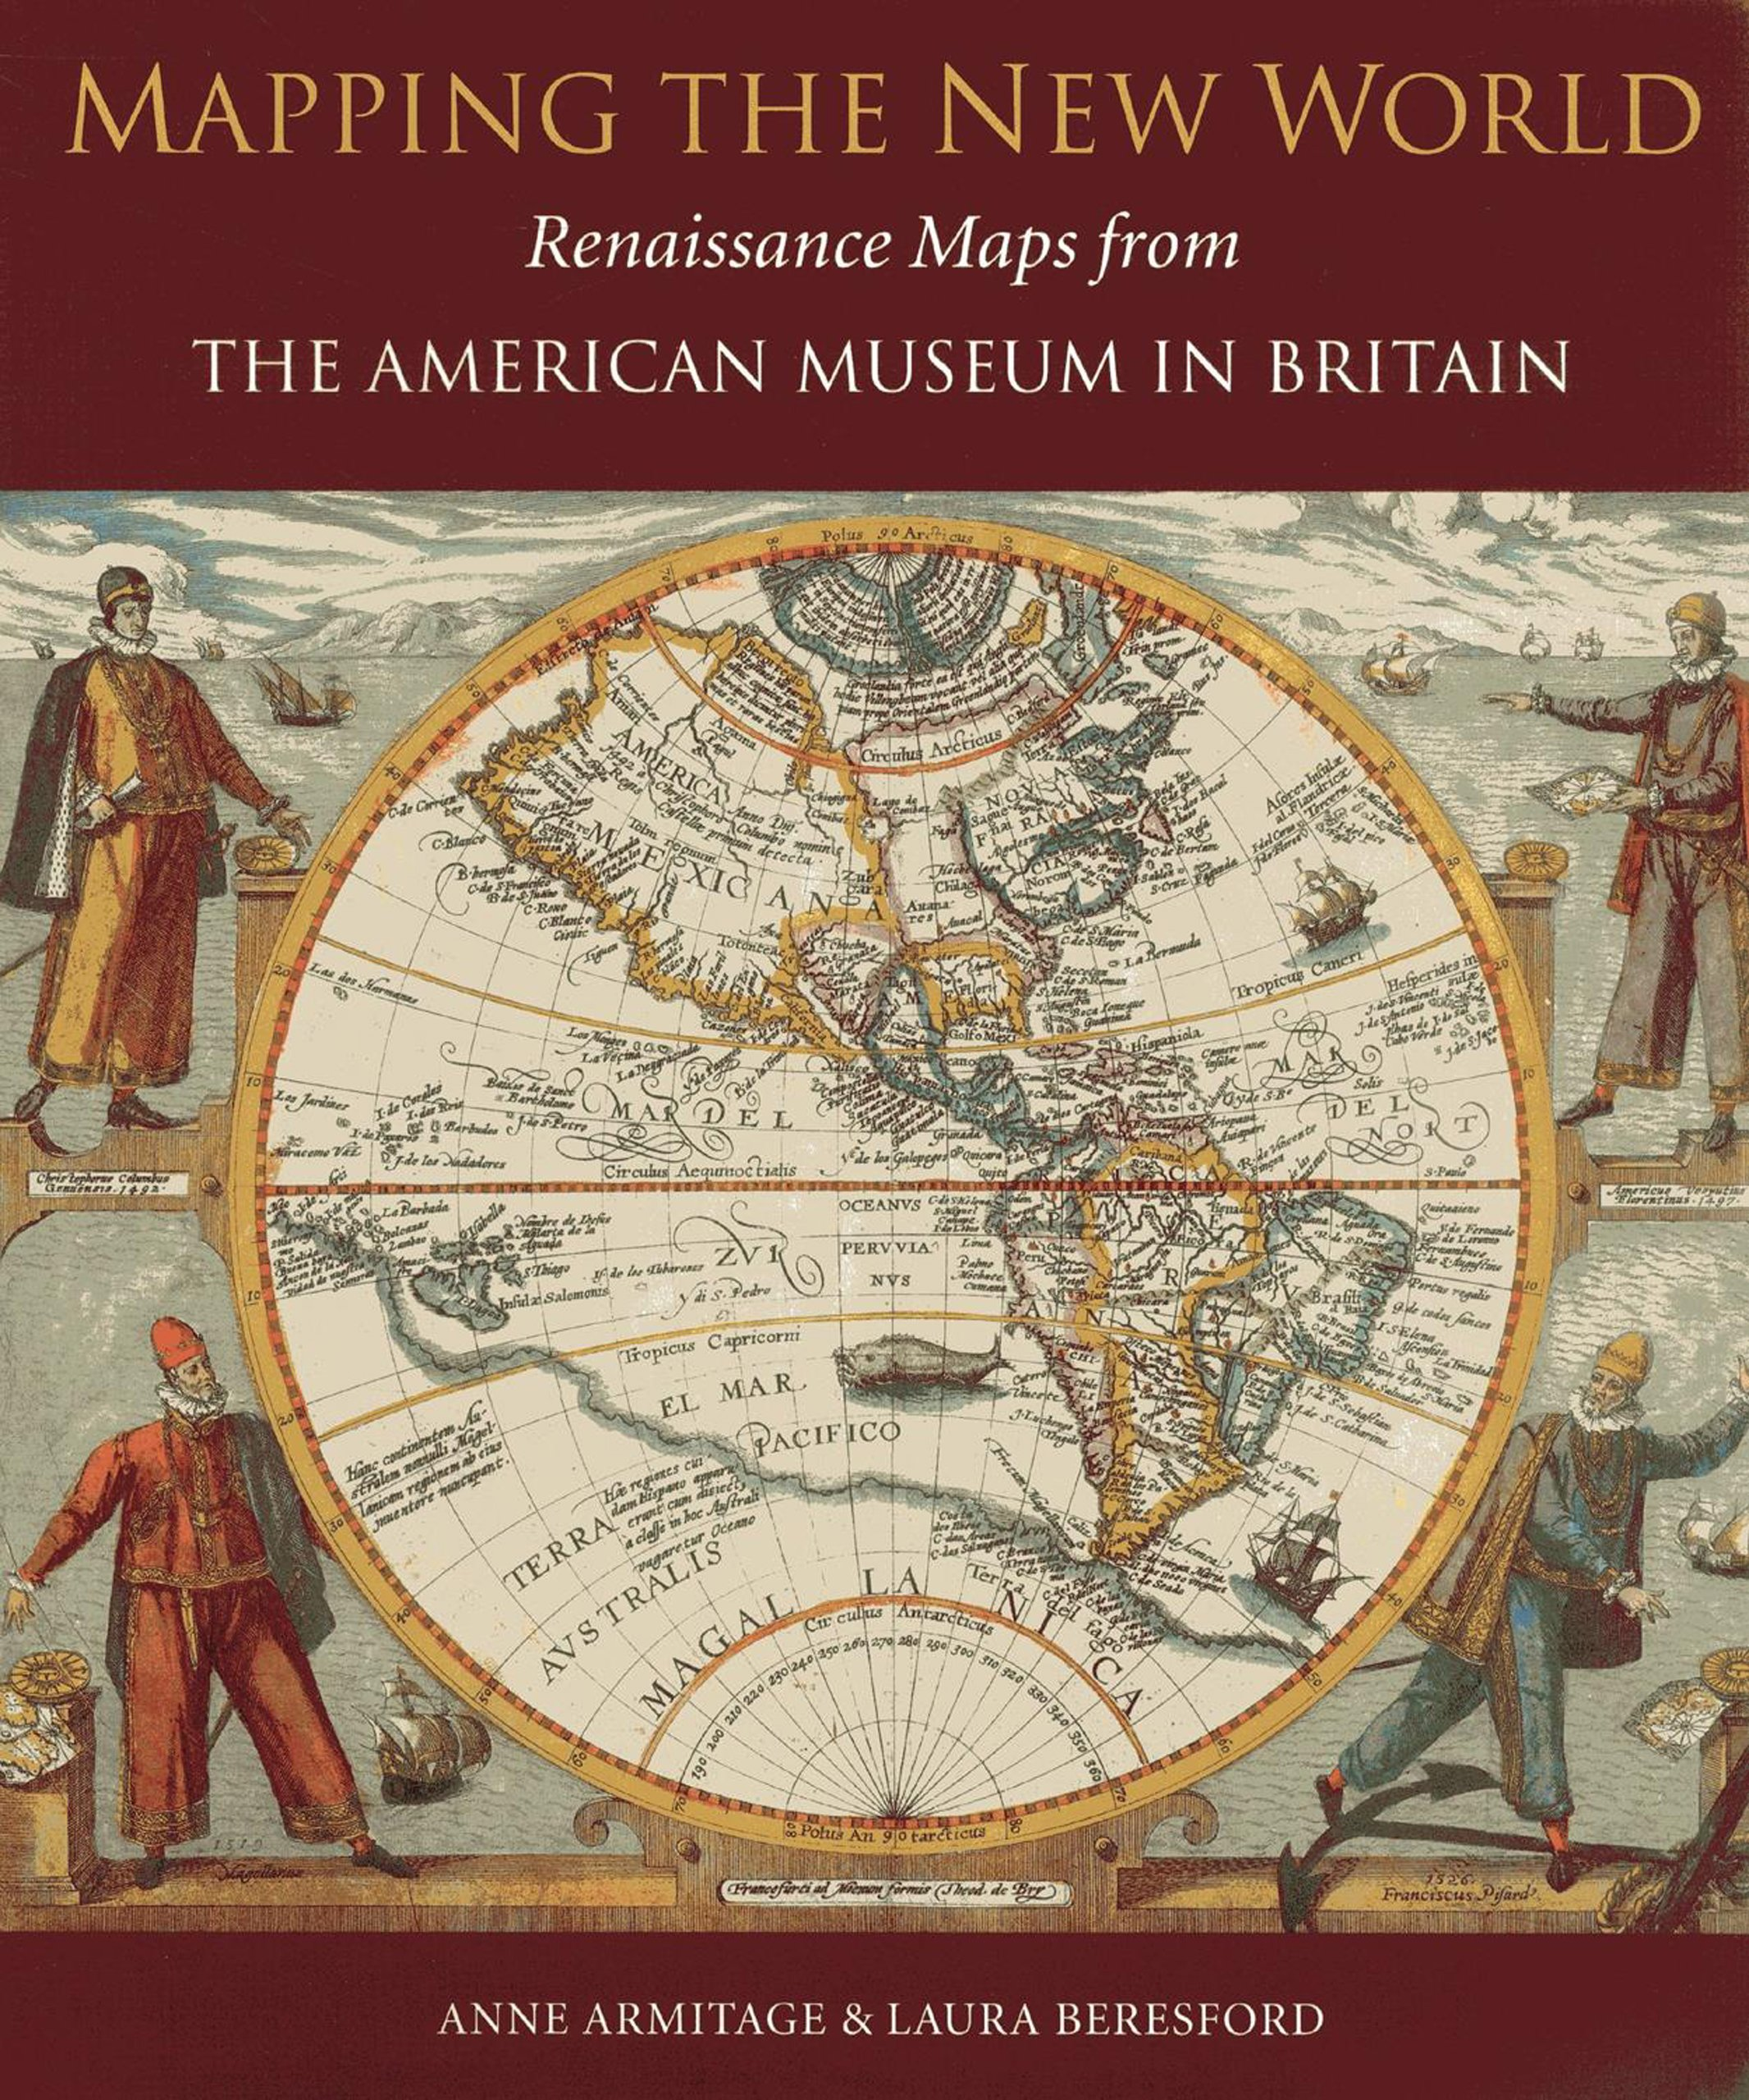 mapping the new world renaissance maps from the american museum in britain amazoncouk anne armitage laura beresford 9781857598223 books